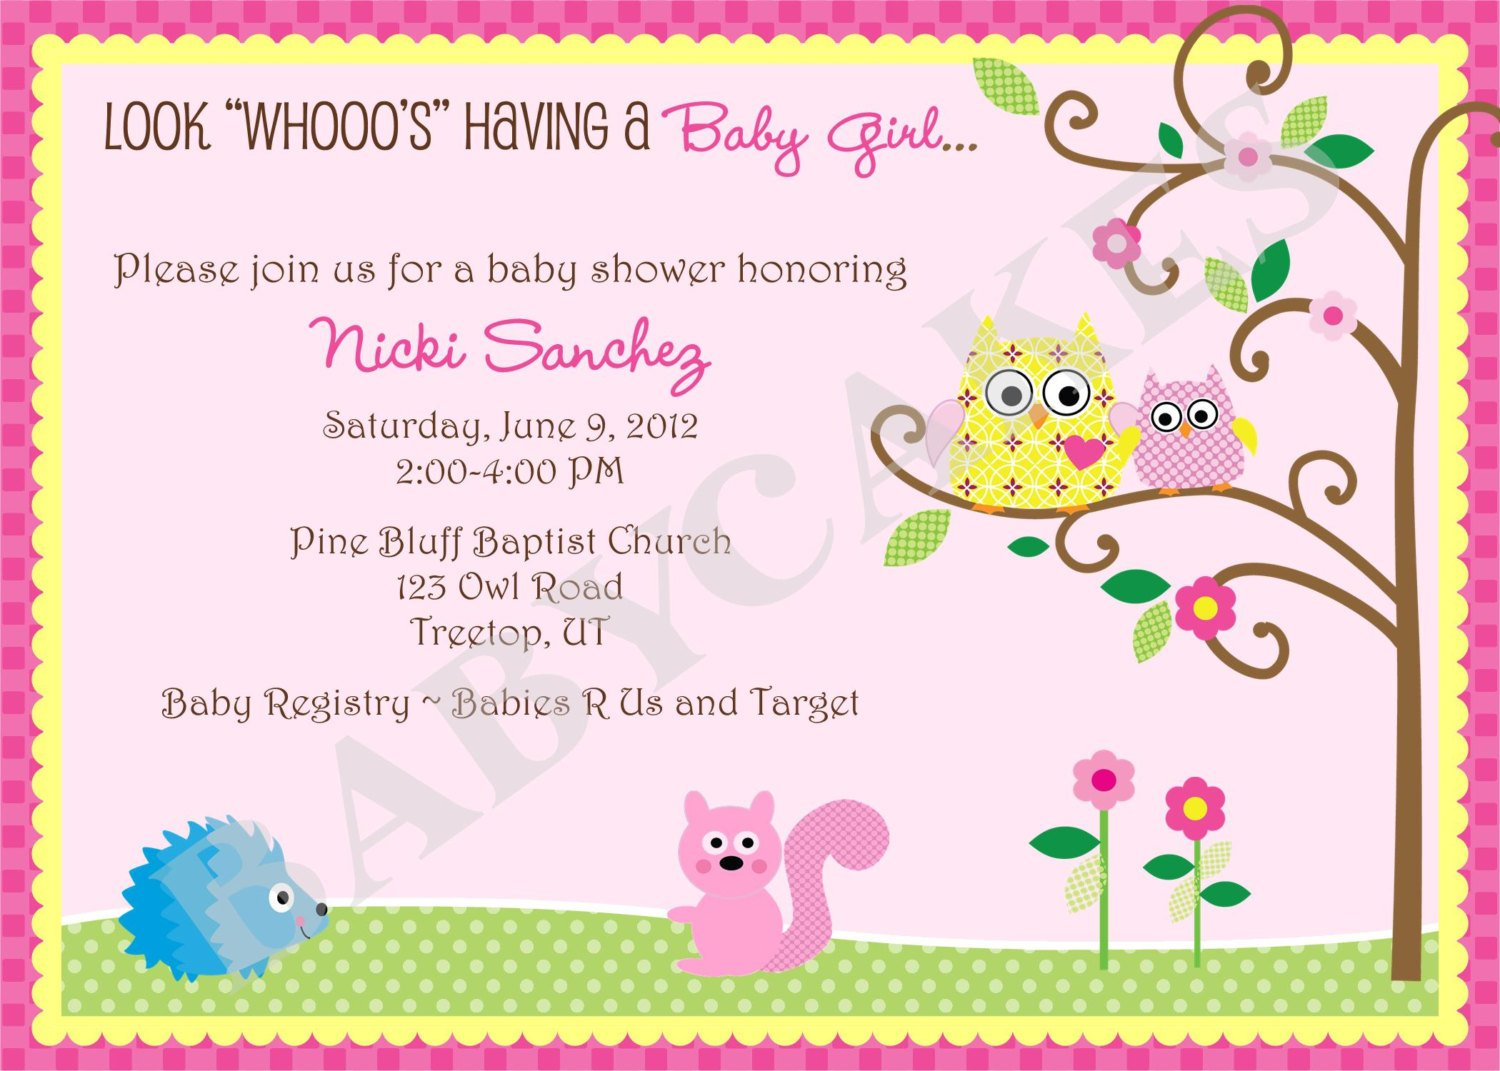 Make Your Own Baby Shower Invitations Free | FREE Printable Baby ...